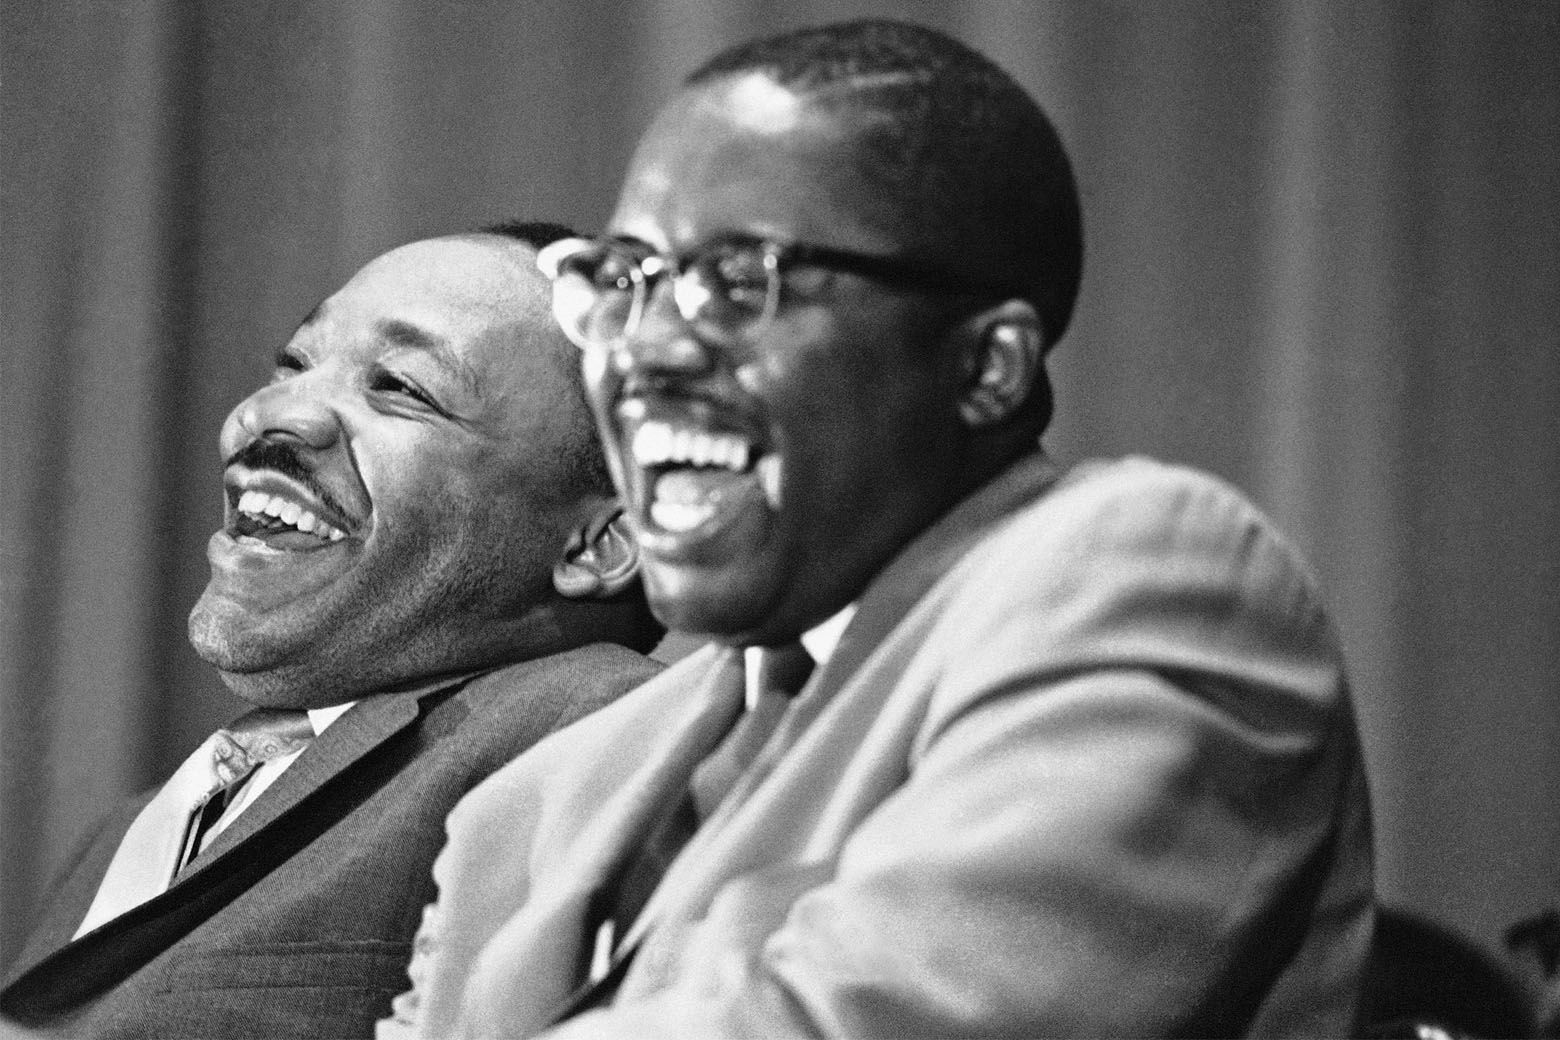 Civil rights leader Martin Luther King Jr., left, and Tuskegee attorney Fred Gray break into laughter at a joke told by a speaker at a political rally in Tuskegee, Alabama, April 29, 1966. Rev. King is on a whistle-stop tour through Alabama to encourage block-voting by blacks in the May 3 Alabama primary. Gray is a candidate for a seat in the Alabama House of Representatives. (AP Photo/Jack Thornell)